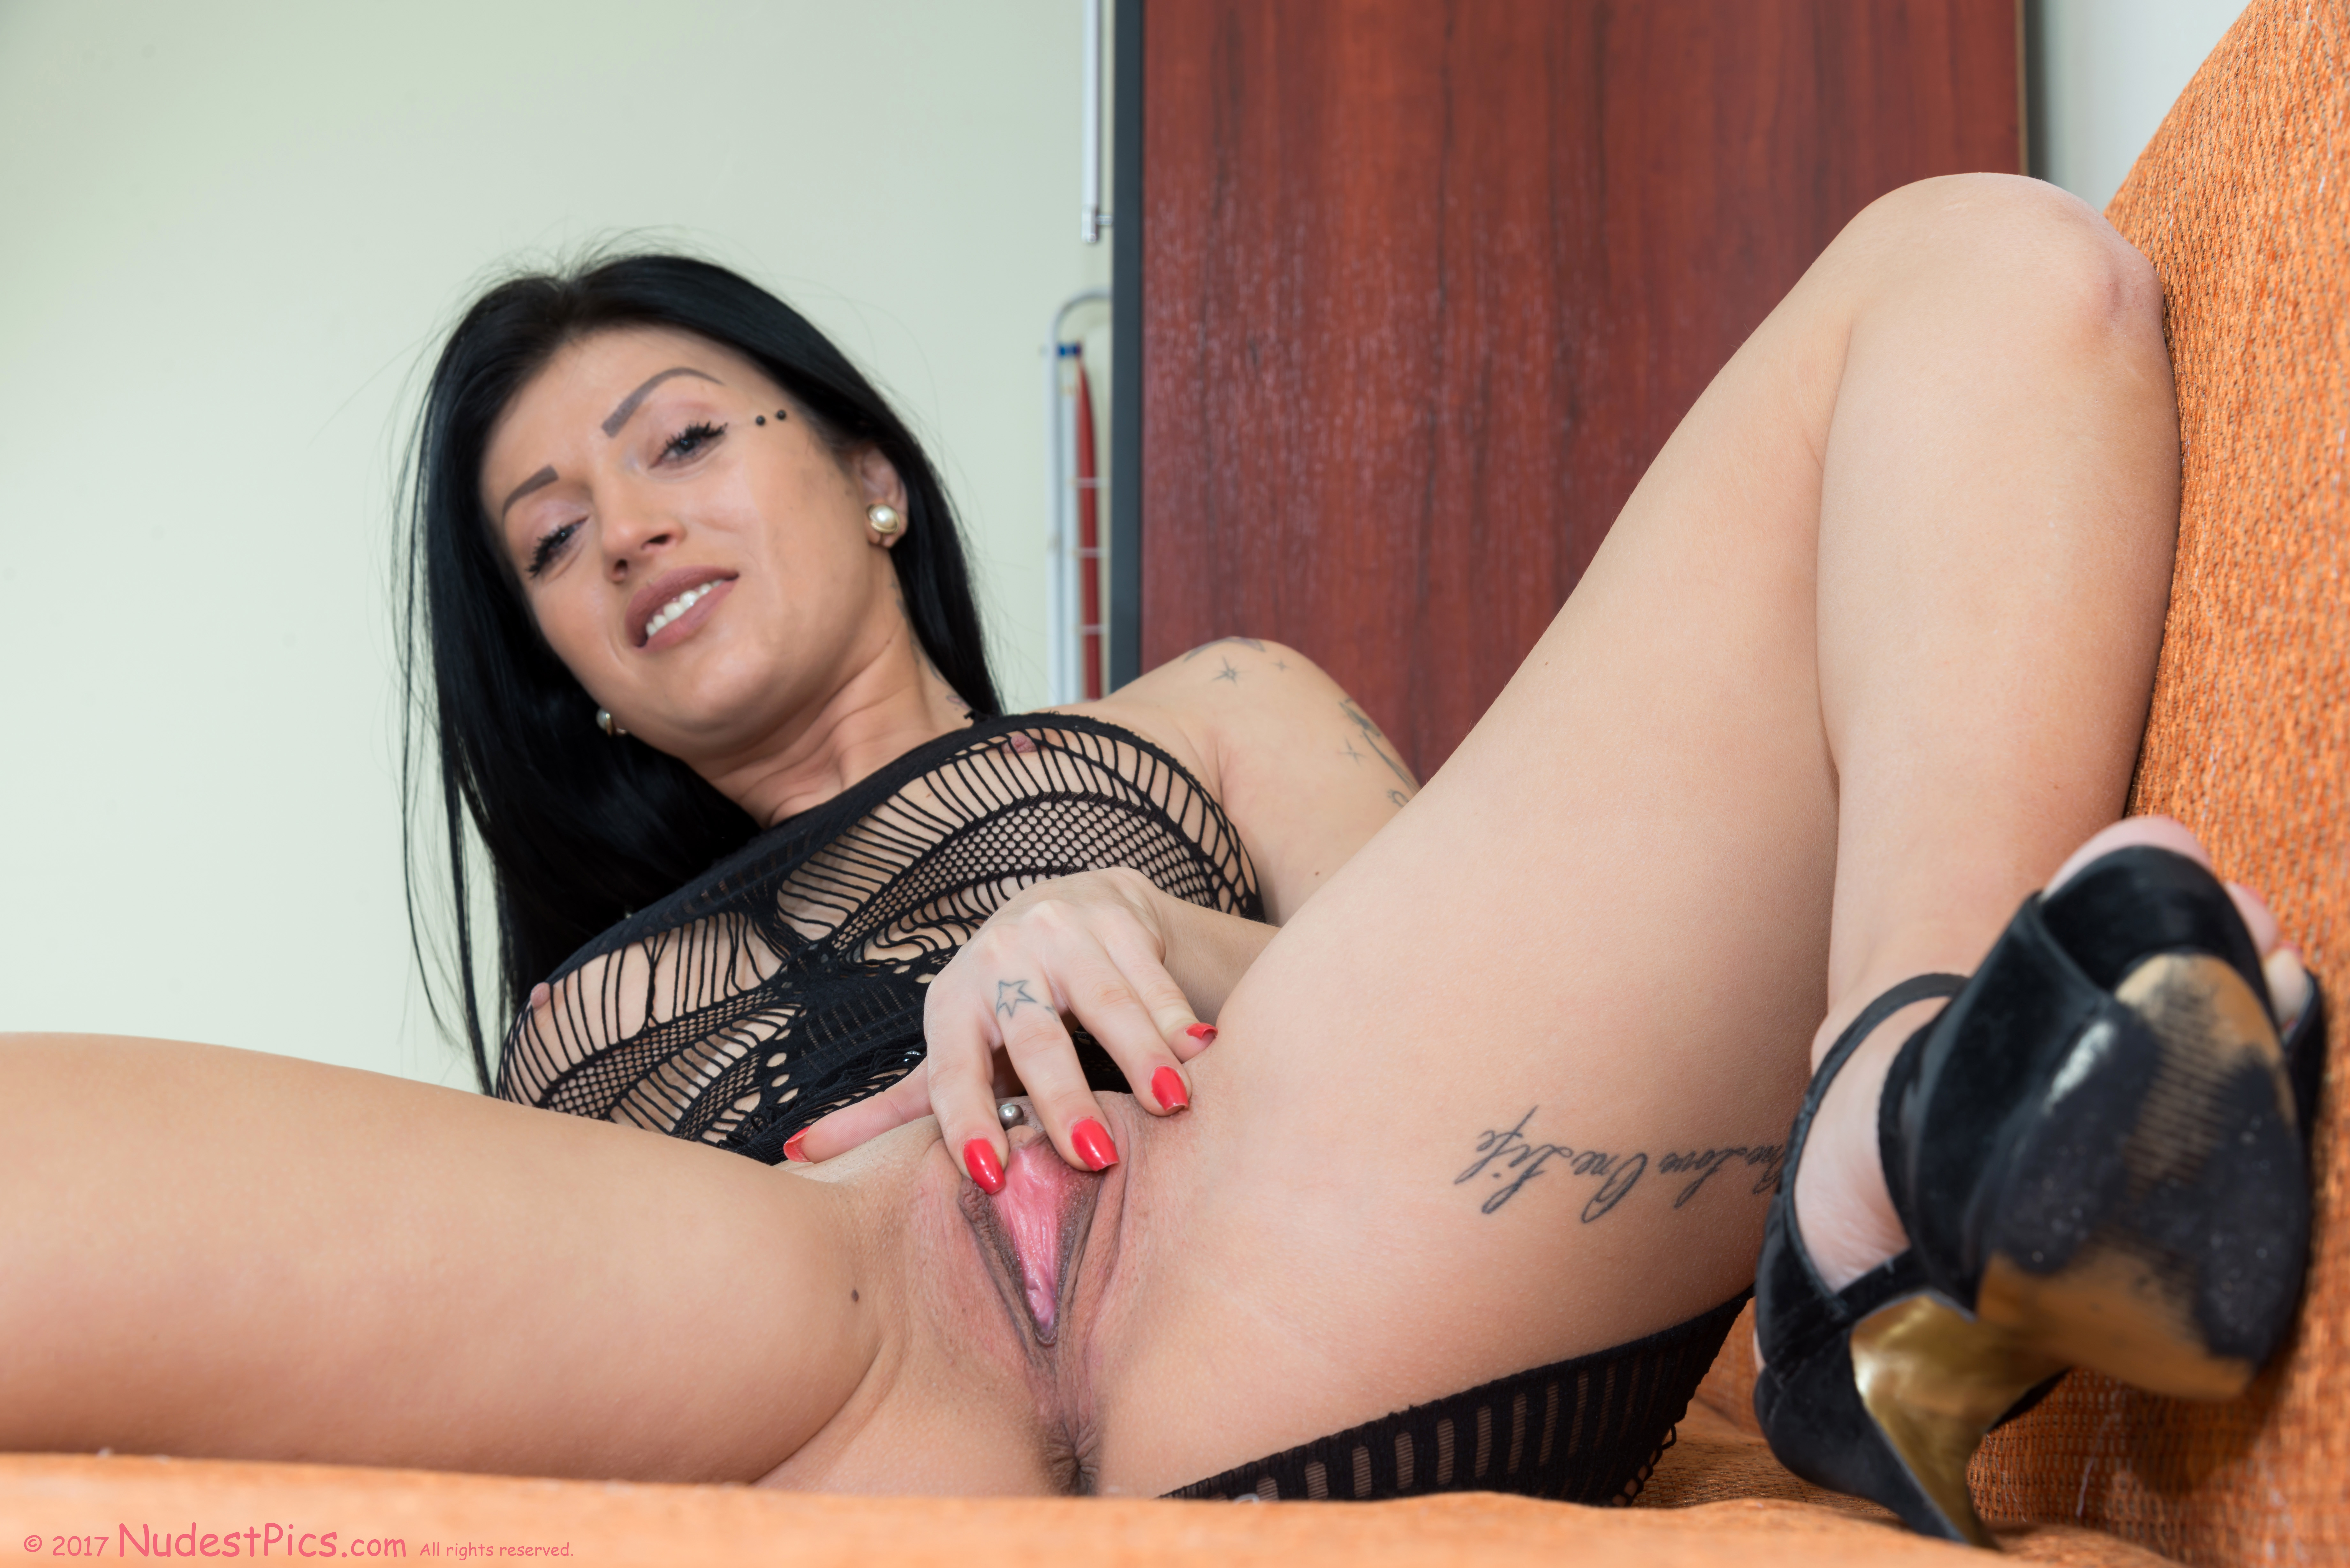 black-women-with-pink-pussys-mature-lesbian-sex-slaves